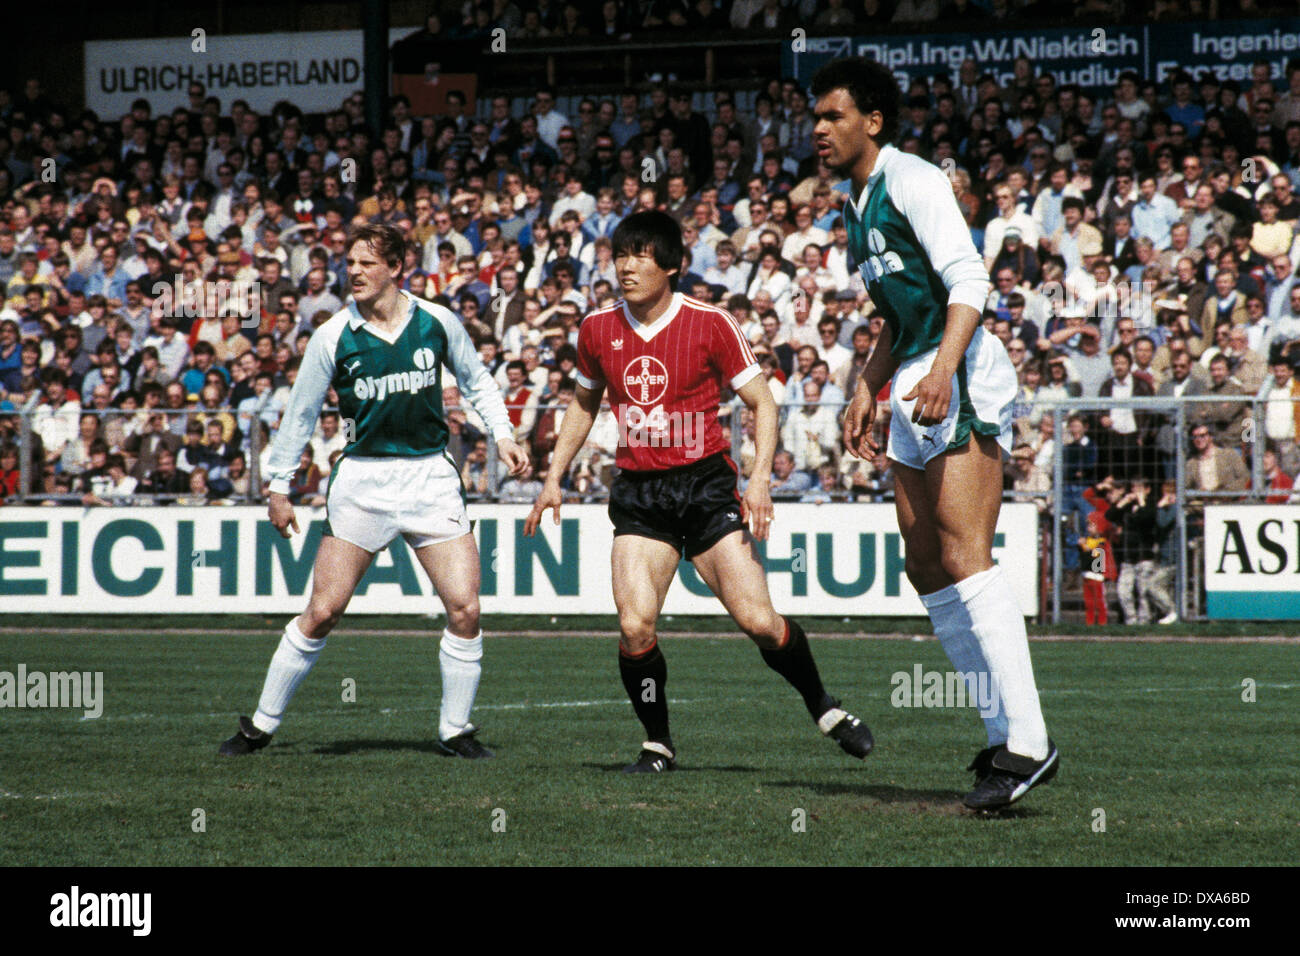 football, Bundesliga, 1983/1984, Ulrich Haberland Stadium, Bayer 04 Leverkusen versus SV Werder Bremen 0:0, scene of the match, f.l.t.r. Thomas Schaaf (Werder), Bum-Kun Cha (Bayer), Rigobert Gruber (Werder) - Stock Image